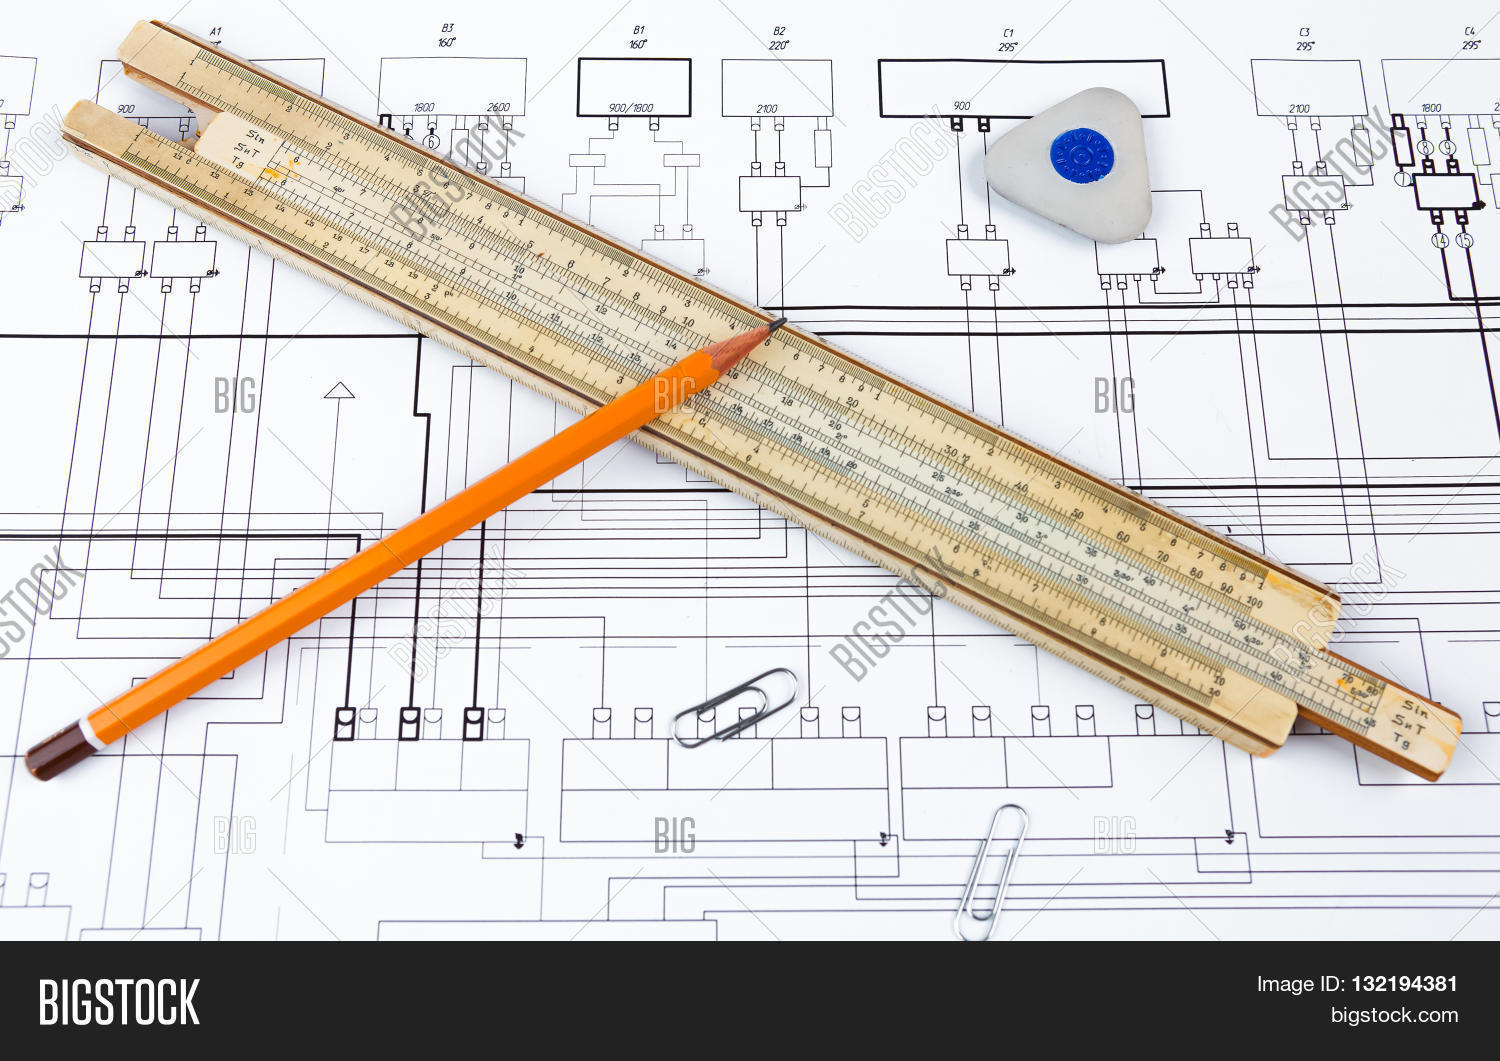 Professional scale ruler pencil image photo bigstock professional scale ruler pencil eraser and some staples on the blueprint malvernweather Choice Image